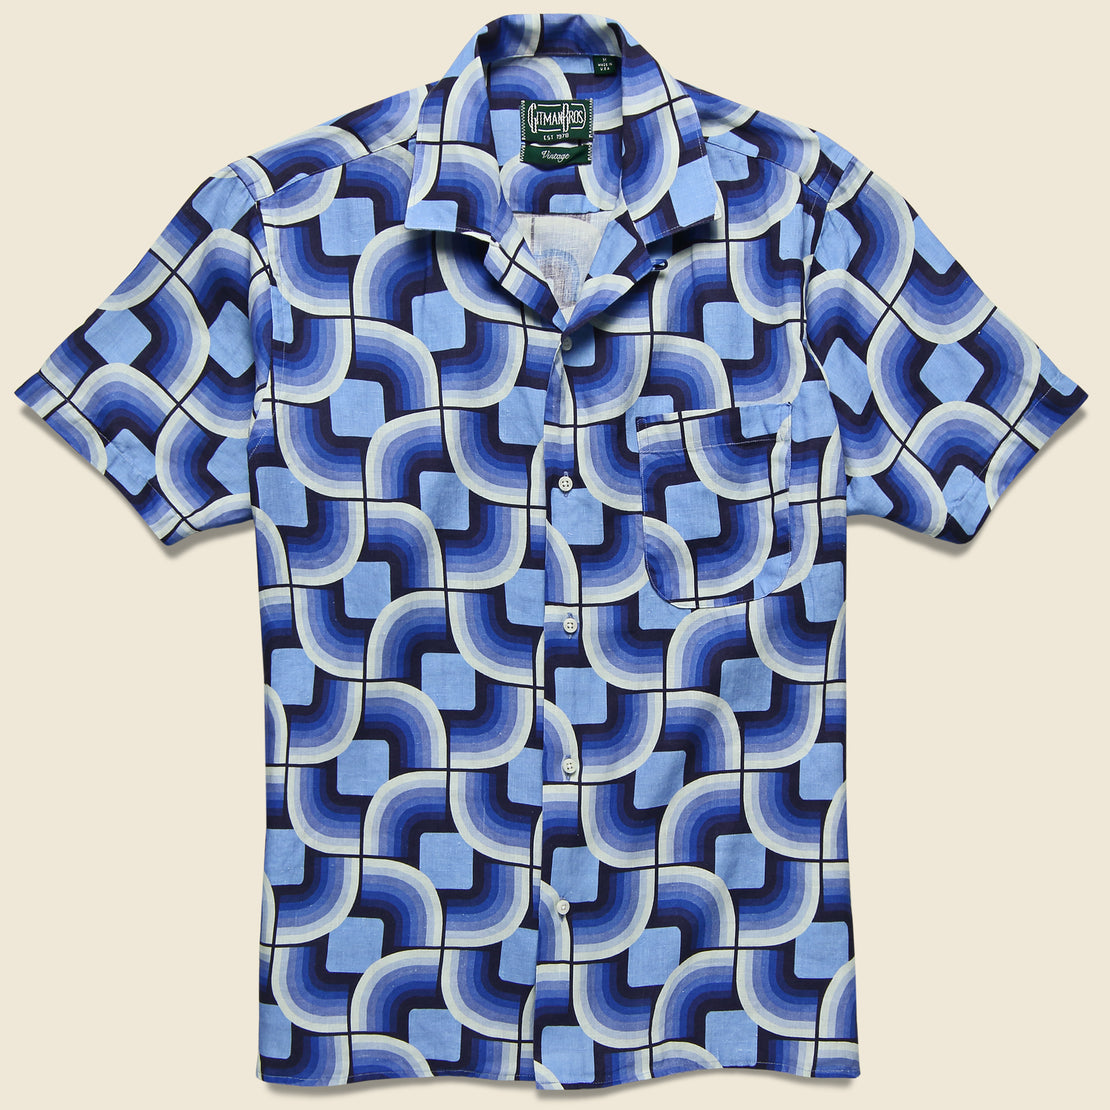 Gitman Vintage Gio Ponti Linen Camp Shirt - Blues